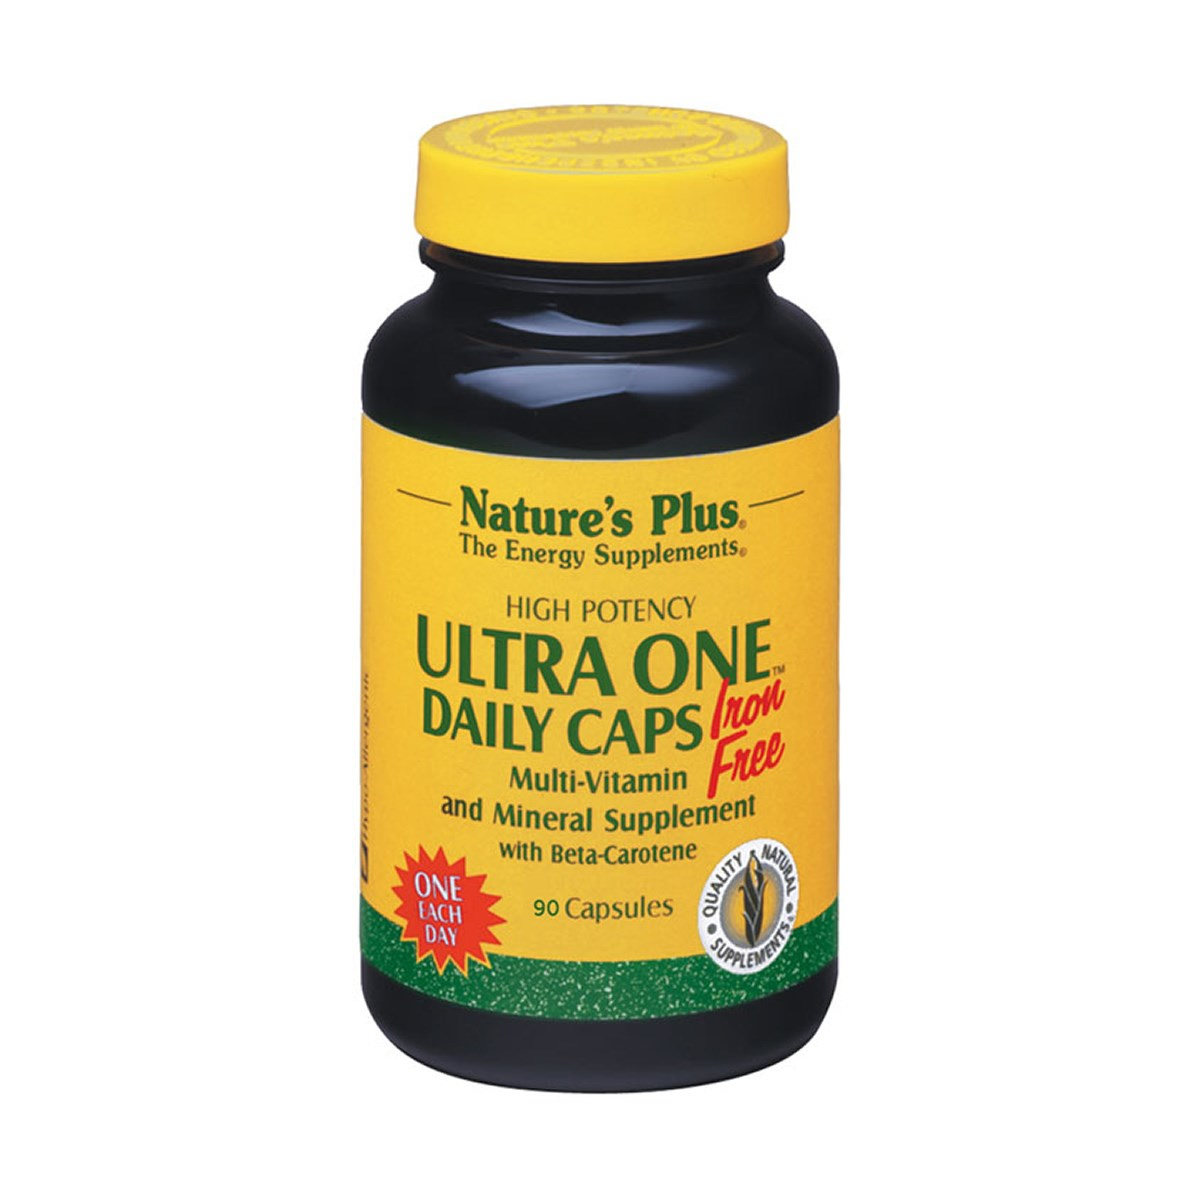 Natures Plus Ultra-One Daily Caps No Iron